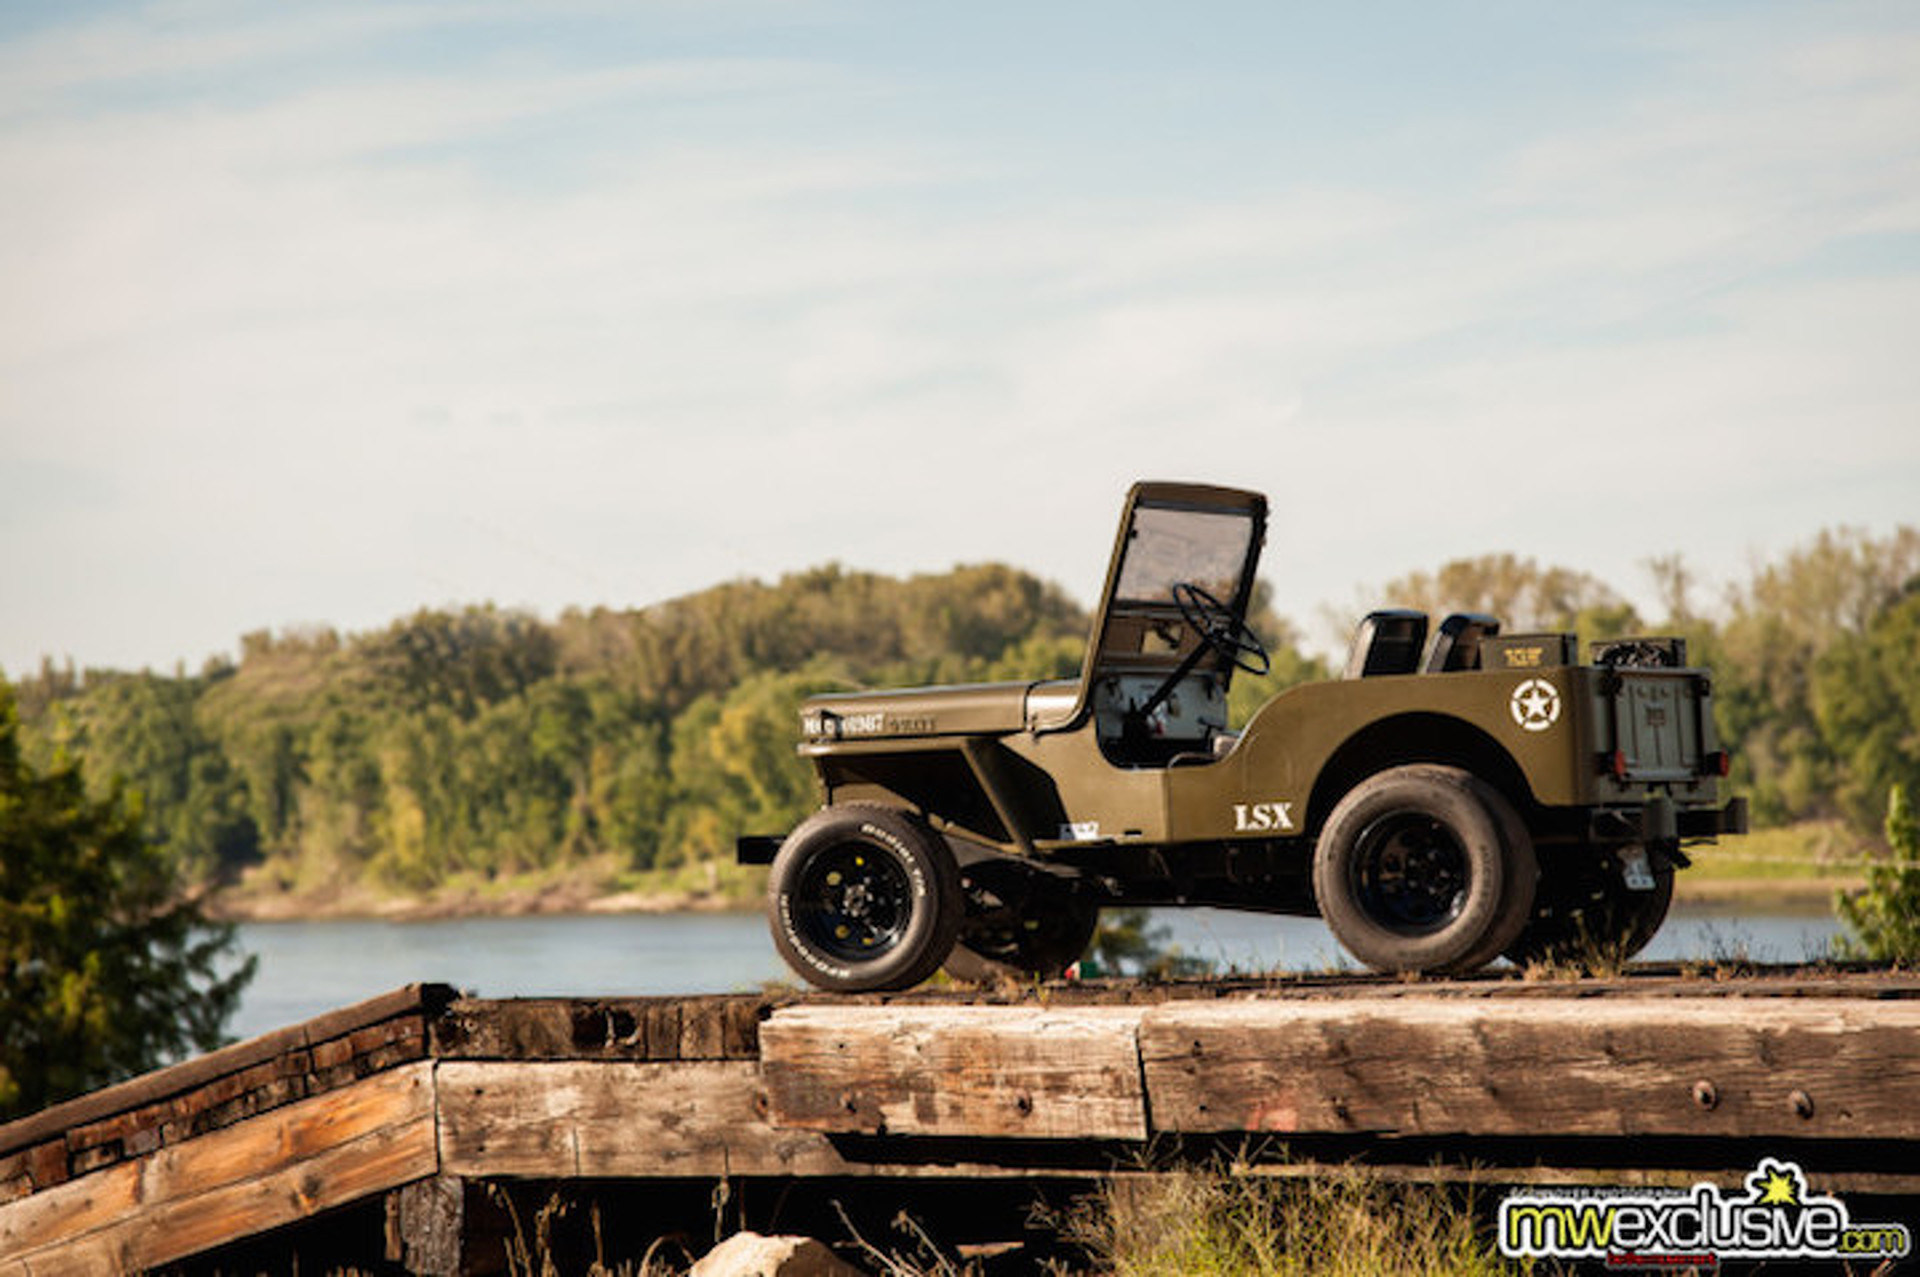 This LS3-Swapped Willys Jeep is the Perfect Veteran's Day Vehicle